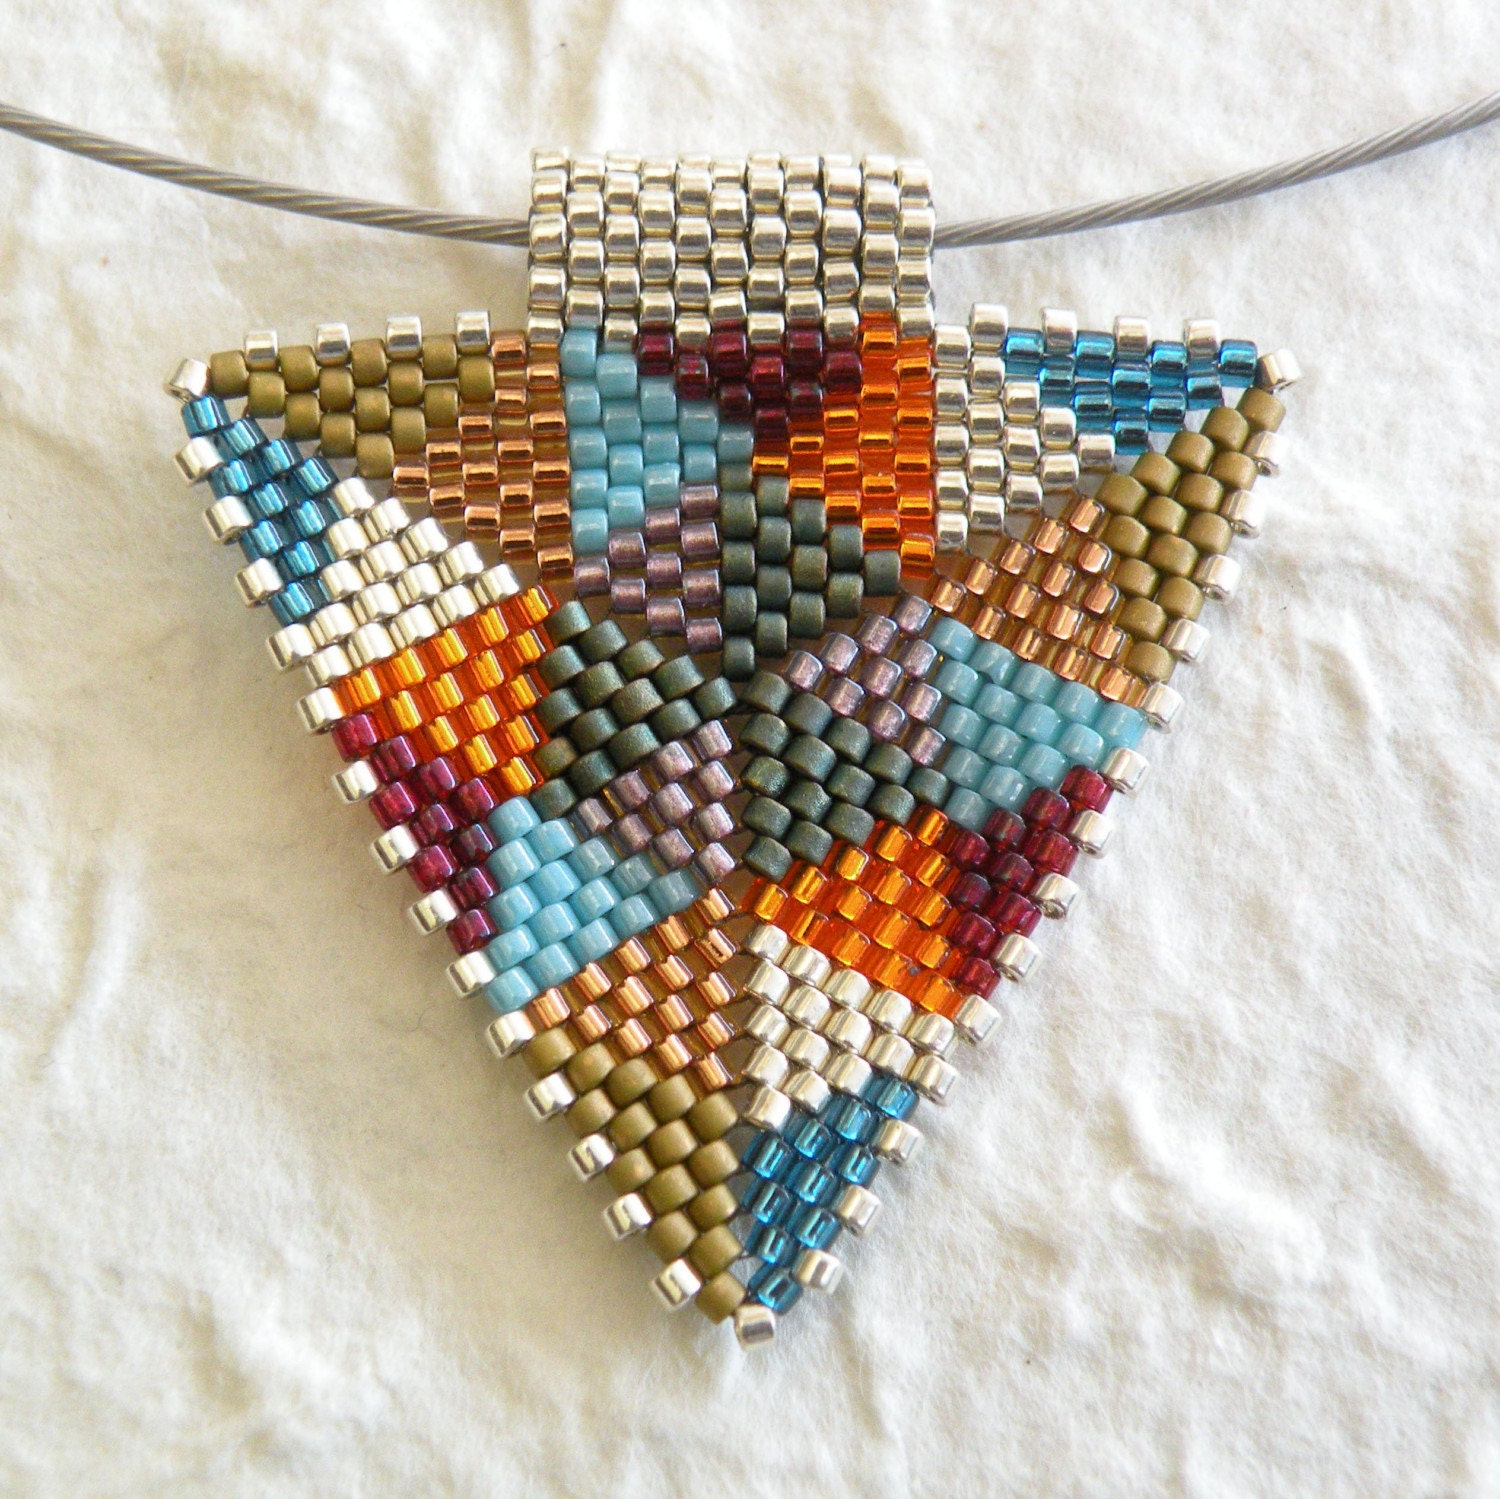 TriangleScape Pendants - Rainbows